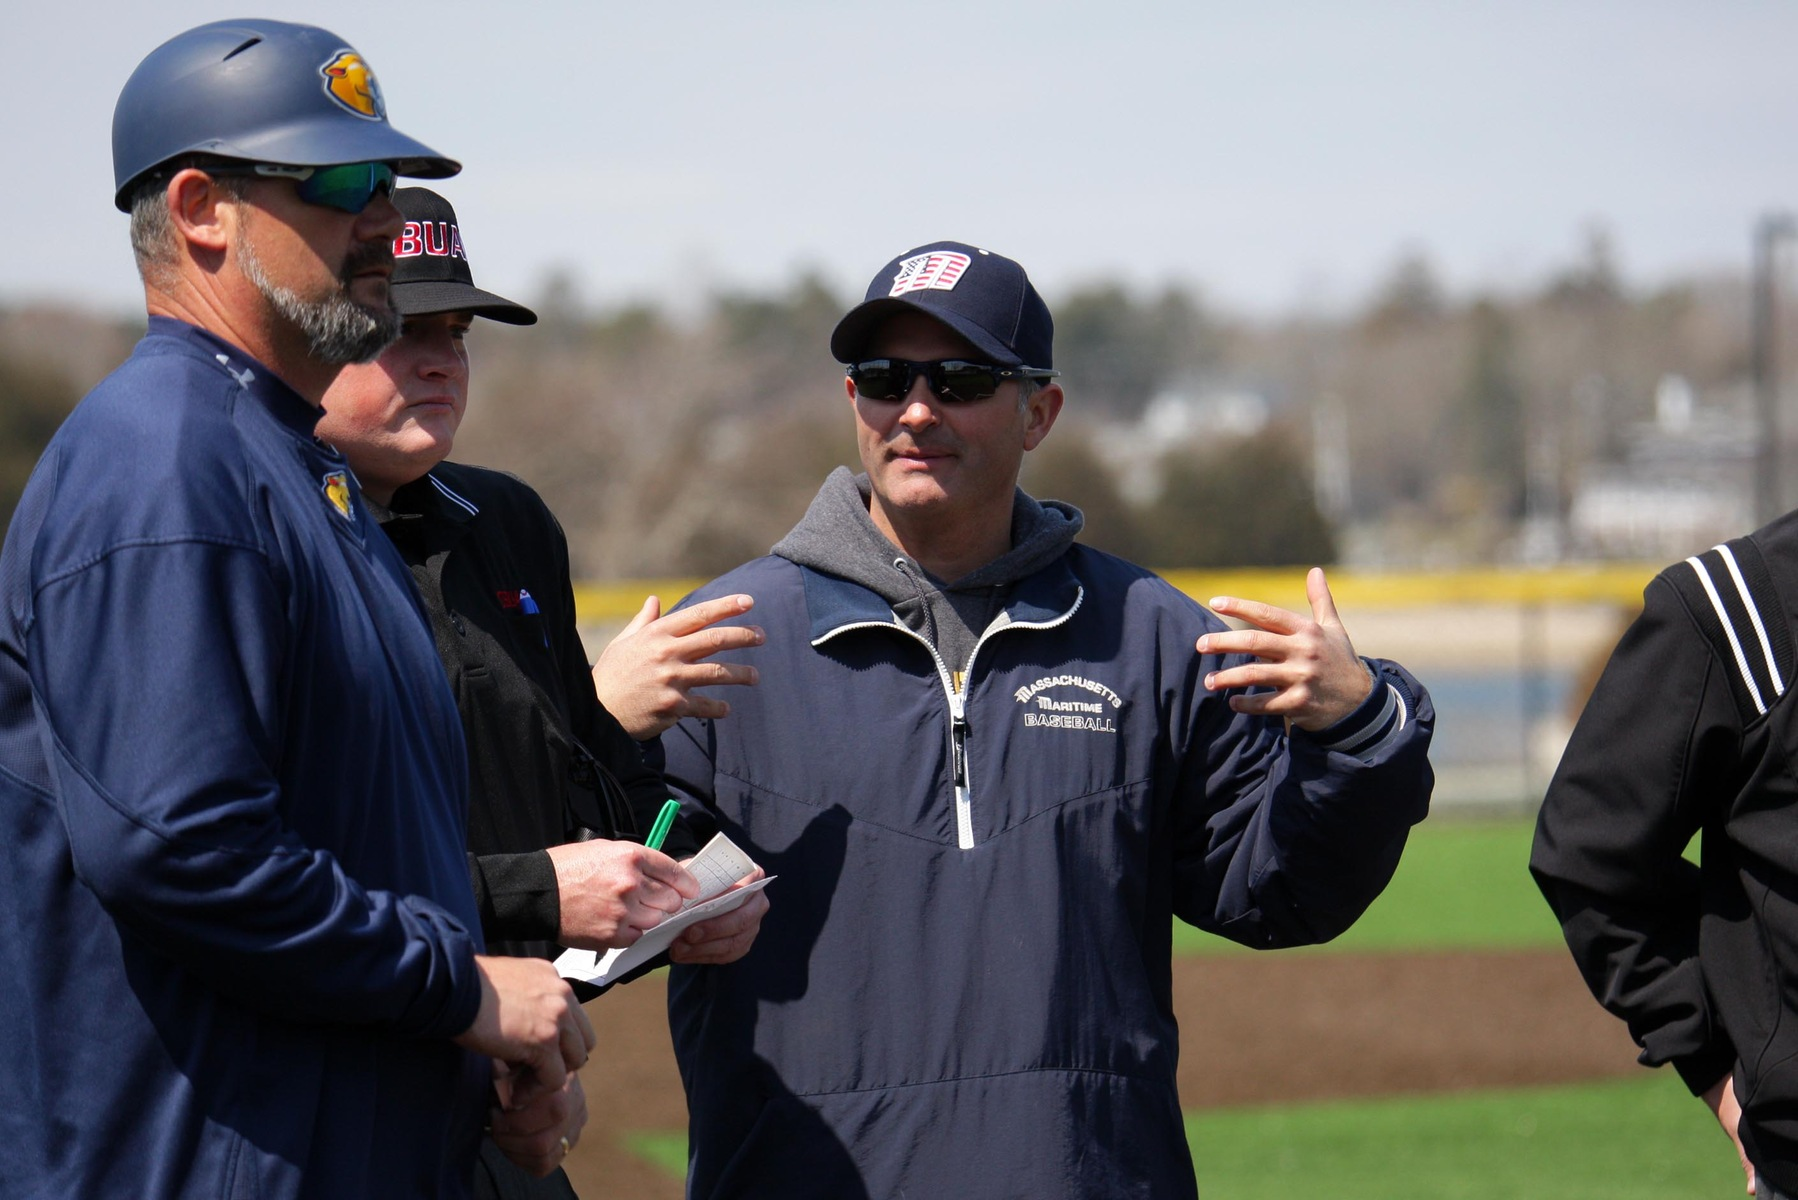 Buccaneer Baseball Gears up for 2019